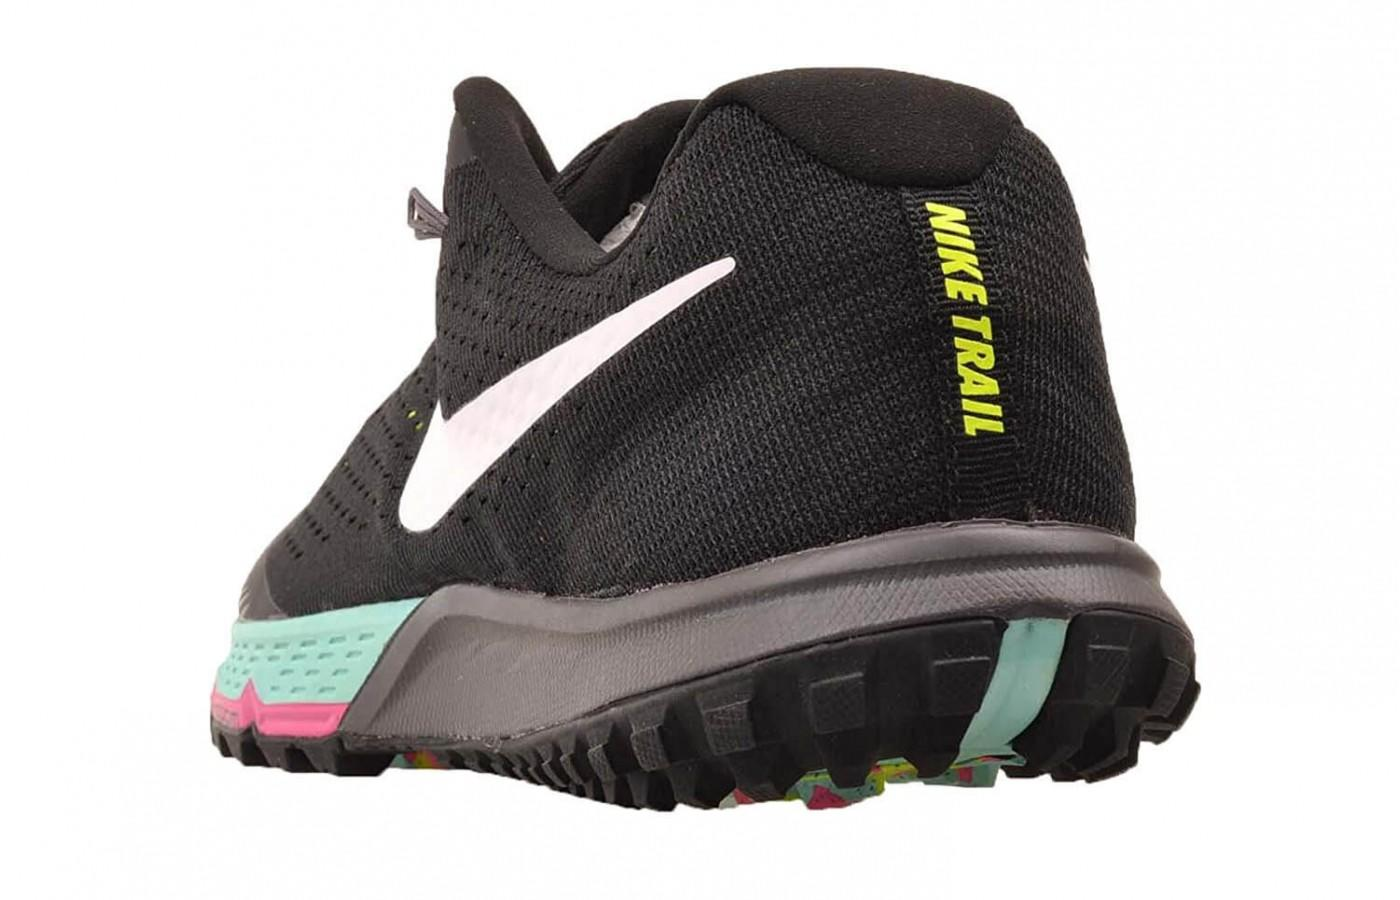 the midsole of the Nike Air Zoom Terra Kiger 4 is a lot softer than its predecessor